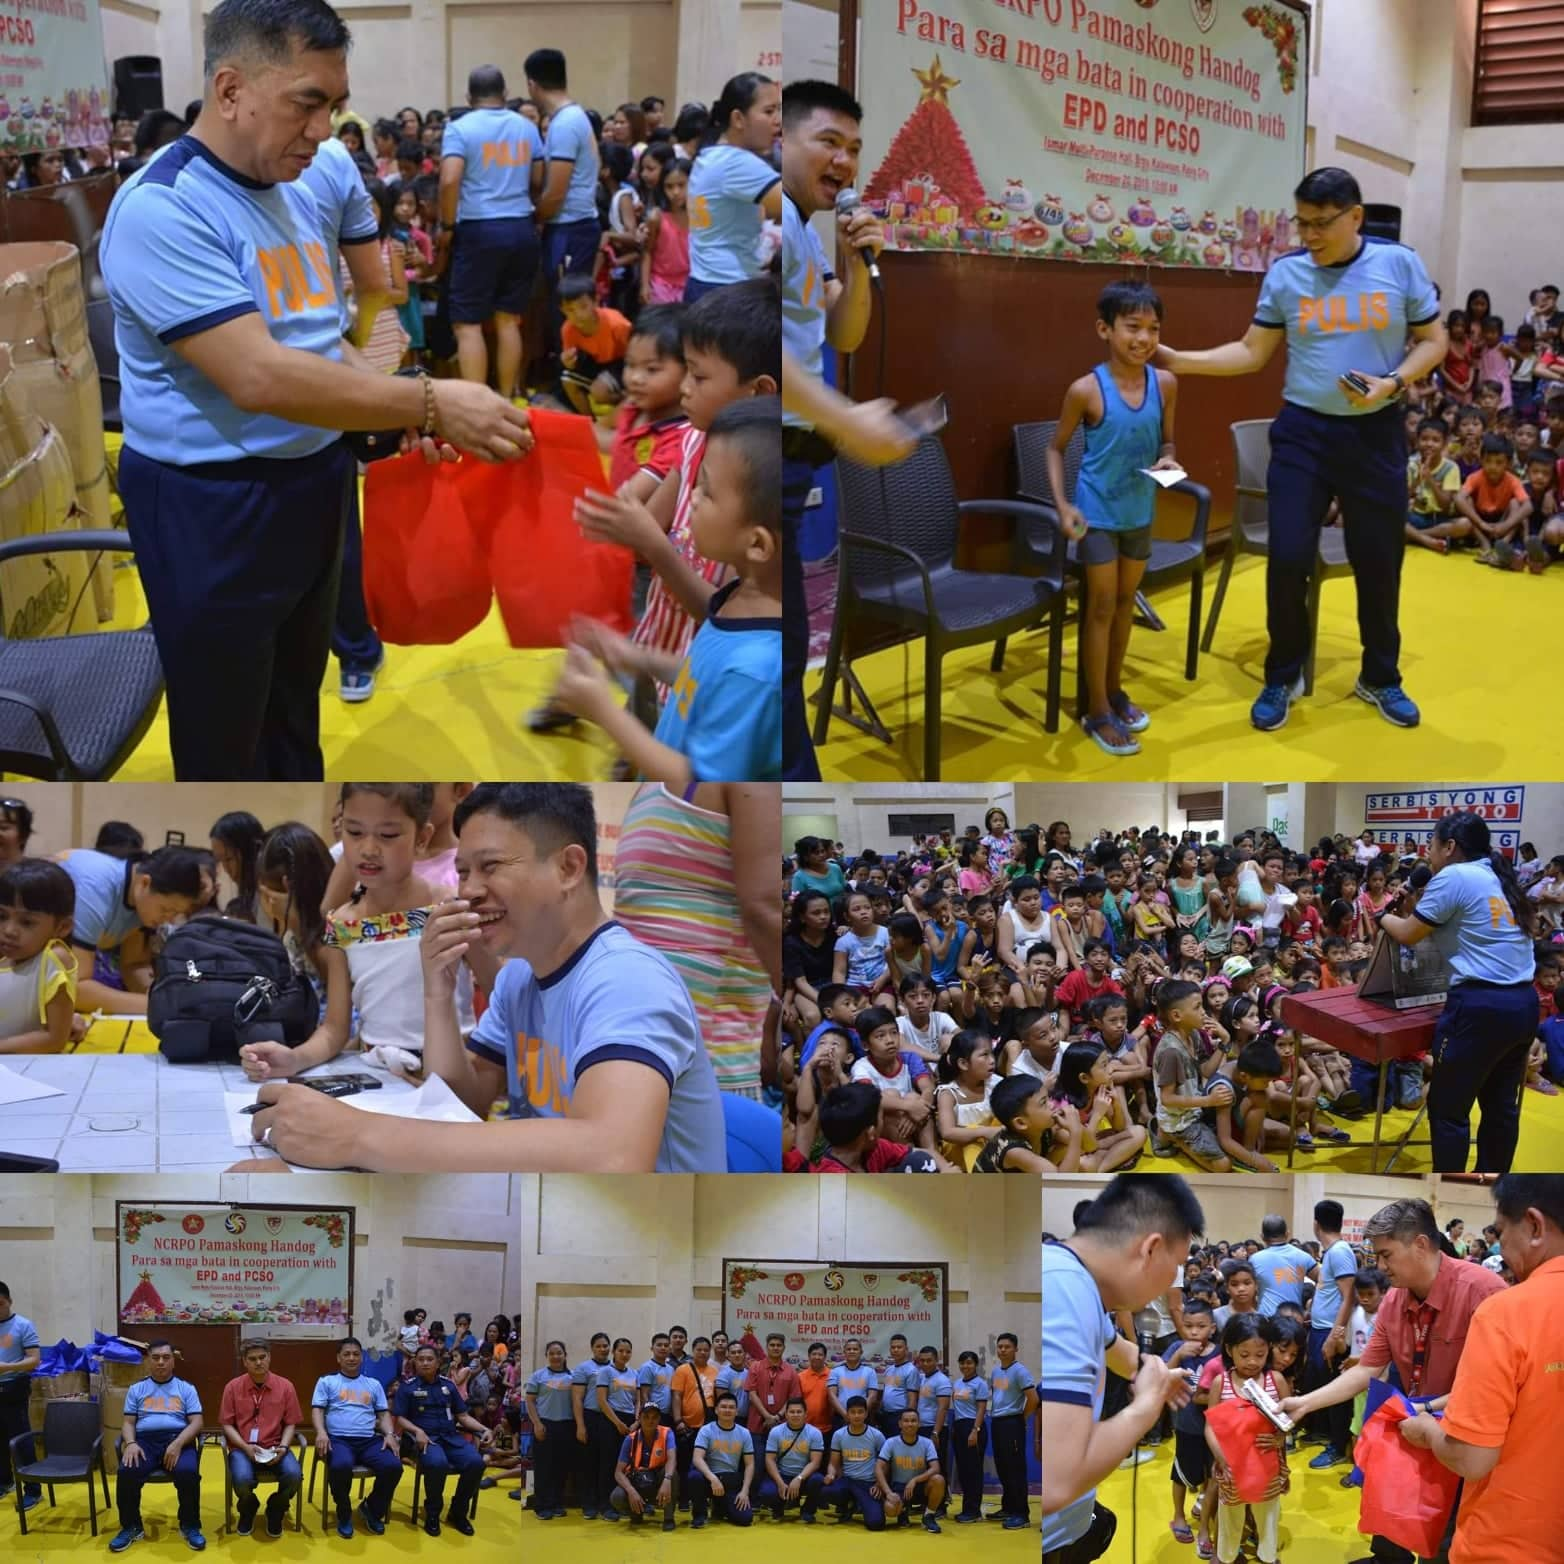 EASTERN POLICE DISTRICT CONDUCTS GIFT-GIVING ACTIVITY AT BRGY. KALAWAAN, PASIG CITY